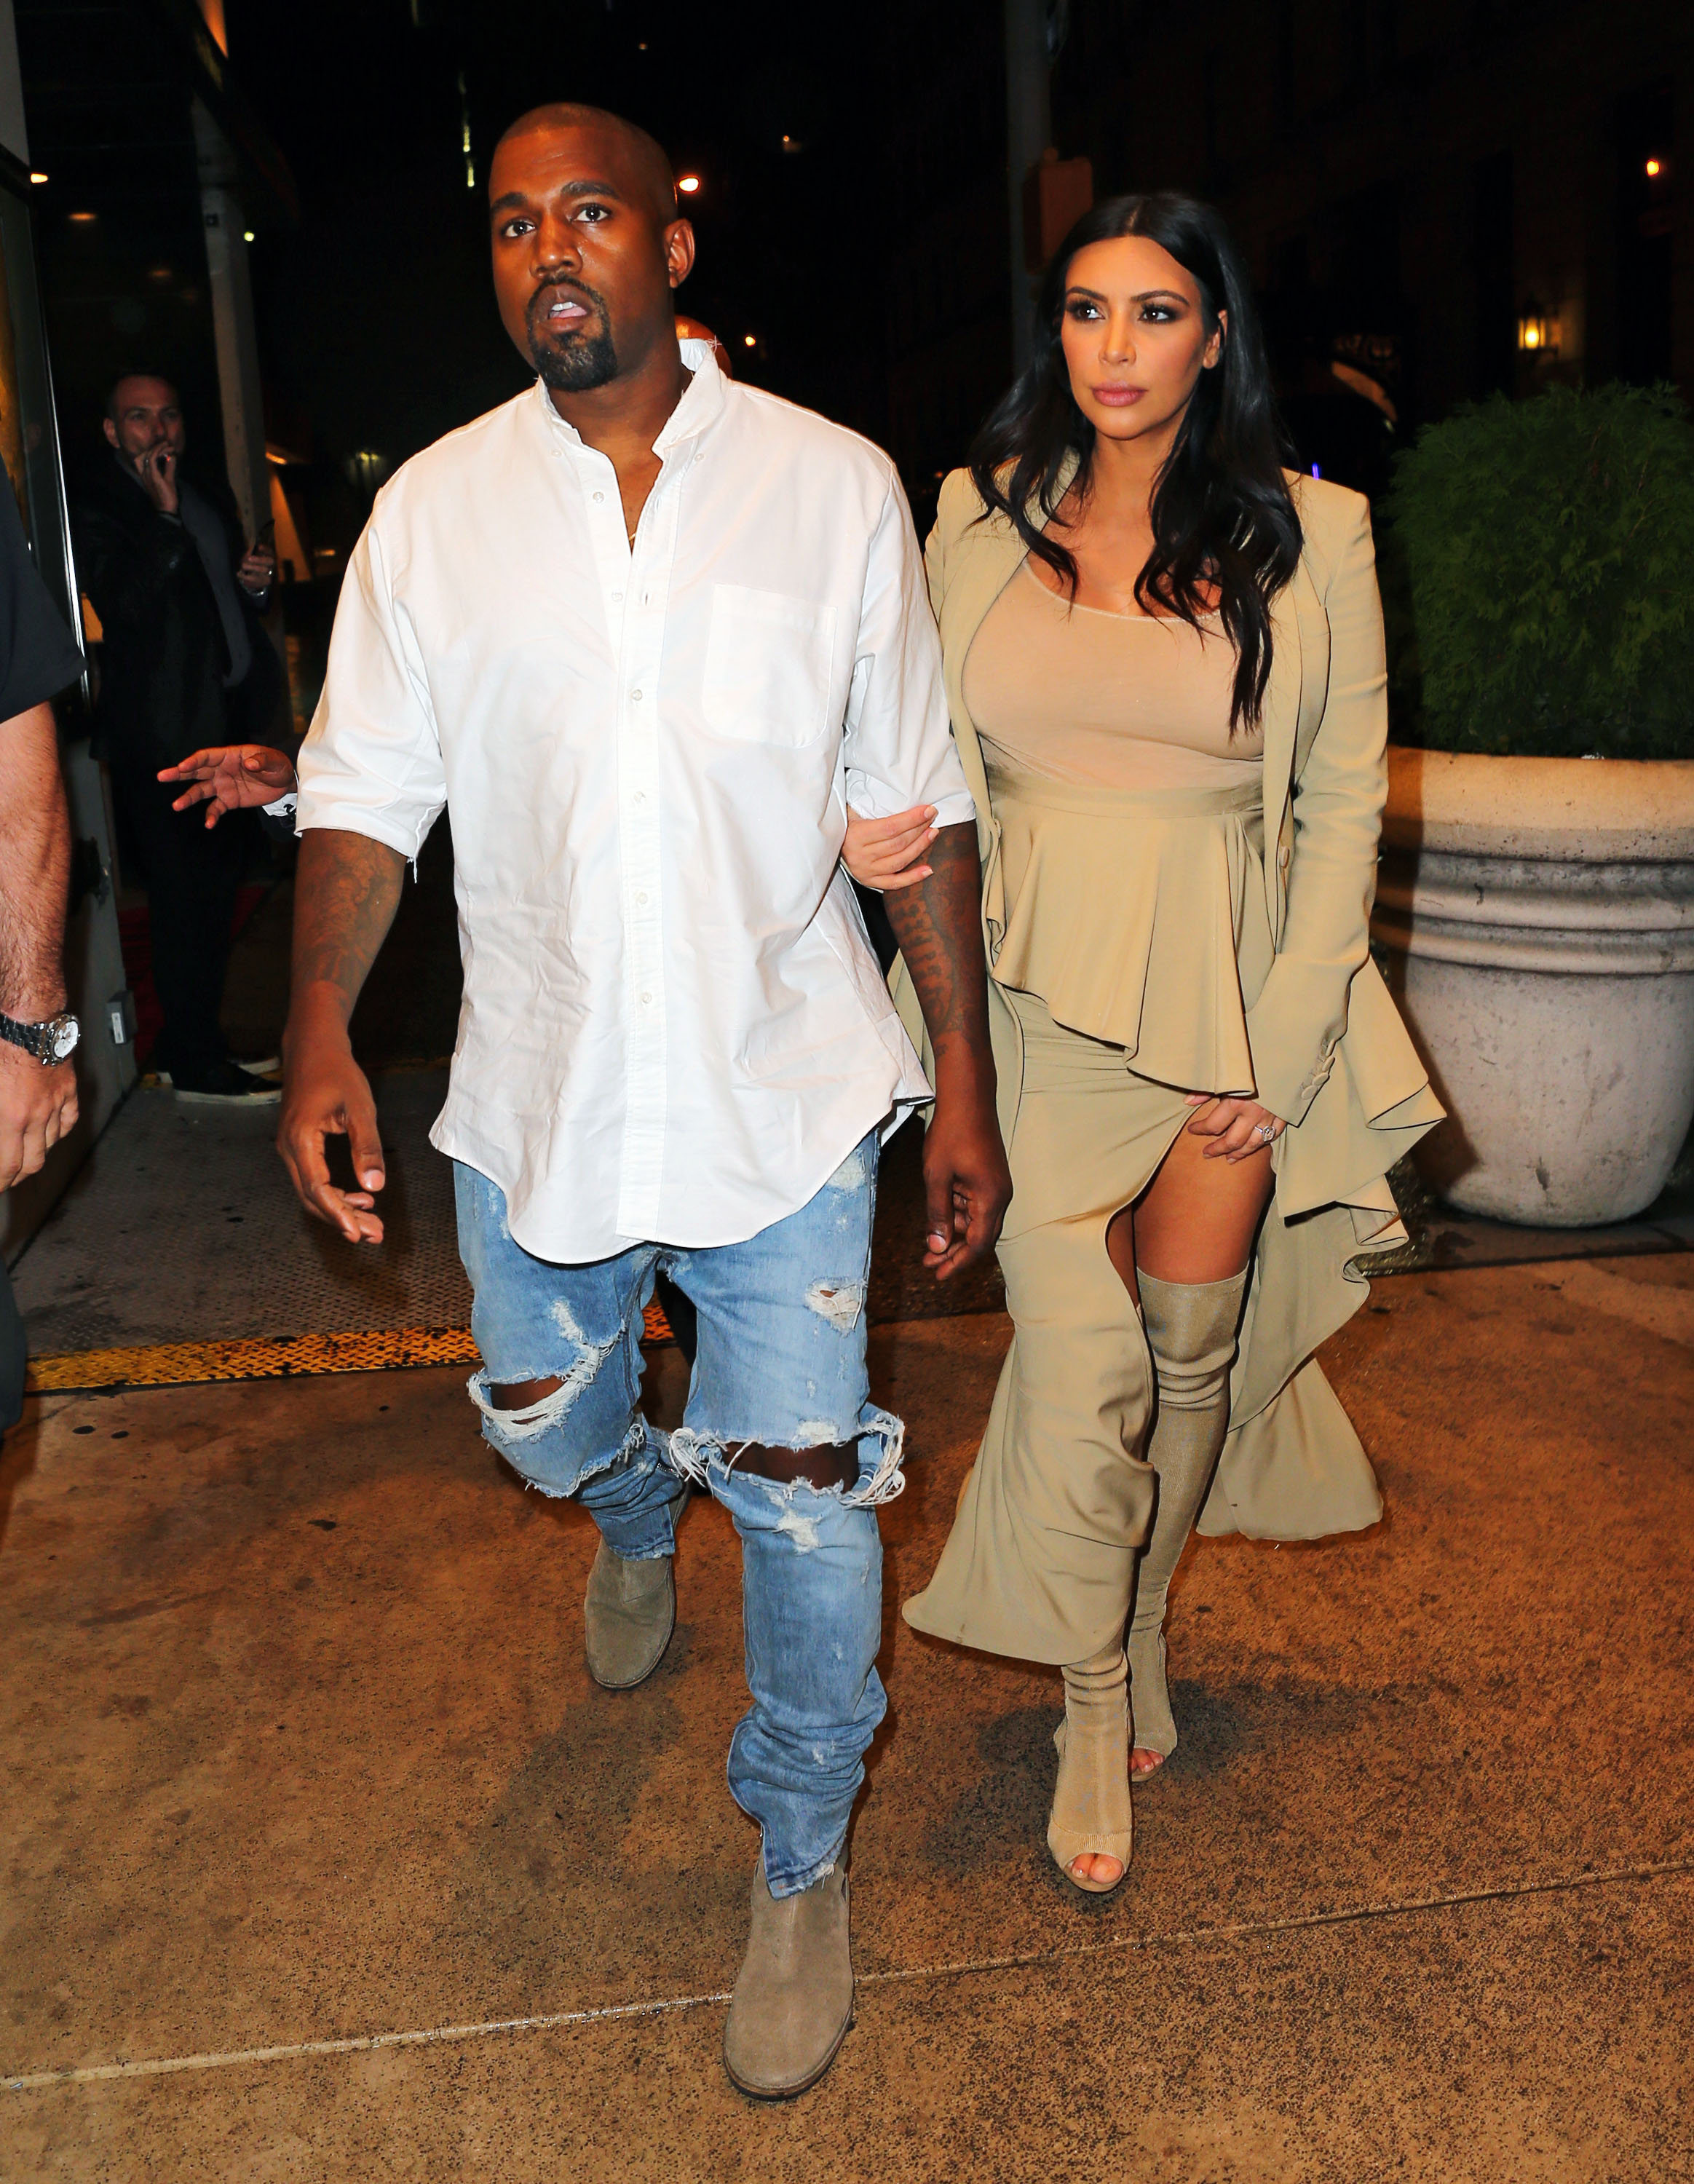 Kanye West and Kim Kardashian go to dinner in the rain in Midtown